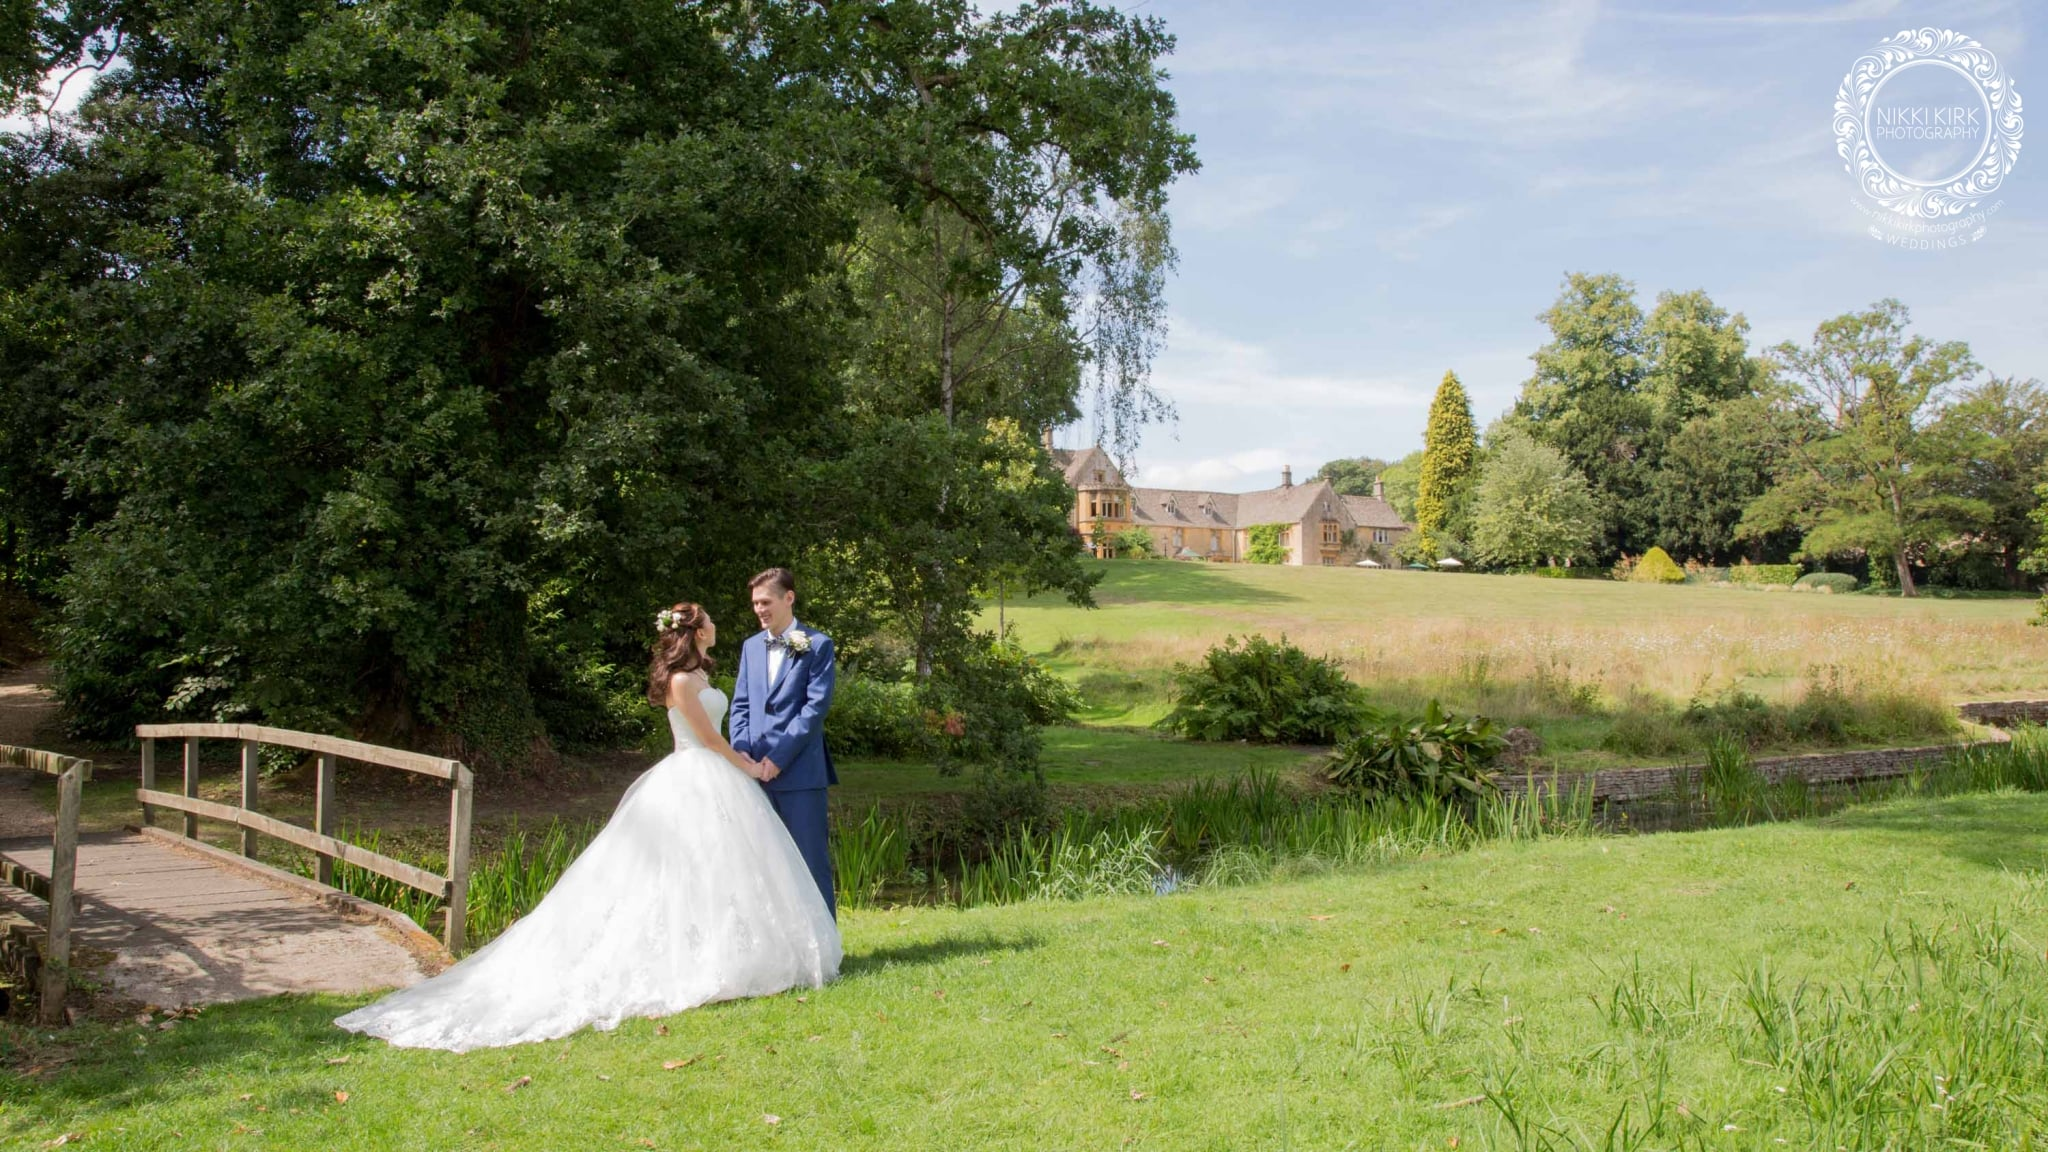 Lords of the Manor wedding photographer Nikki Kirk Japanese wedding